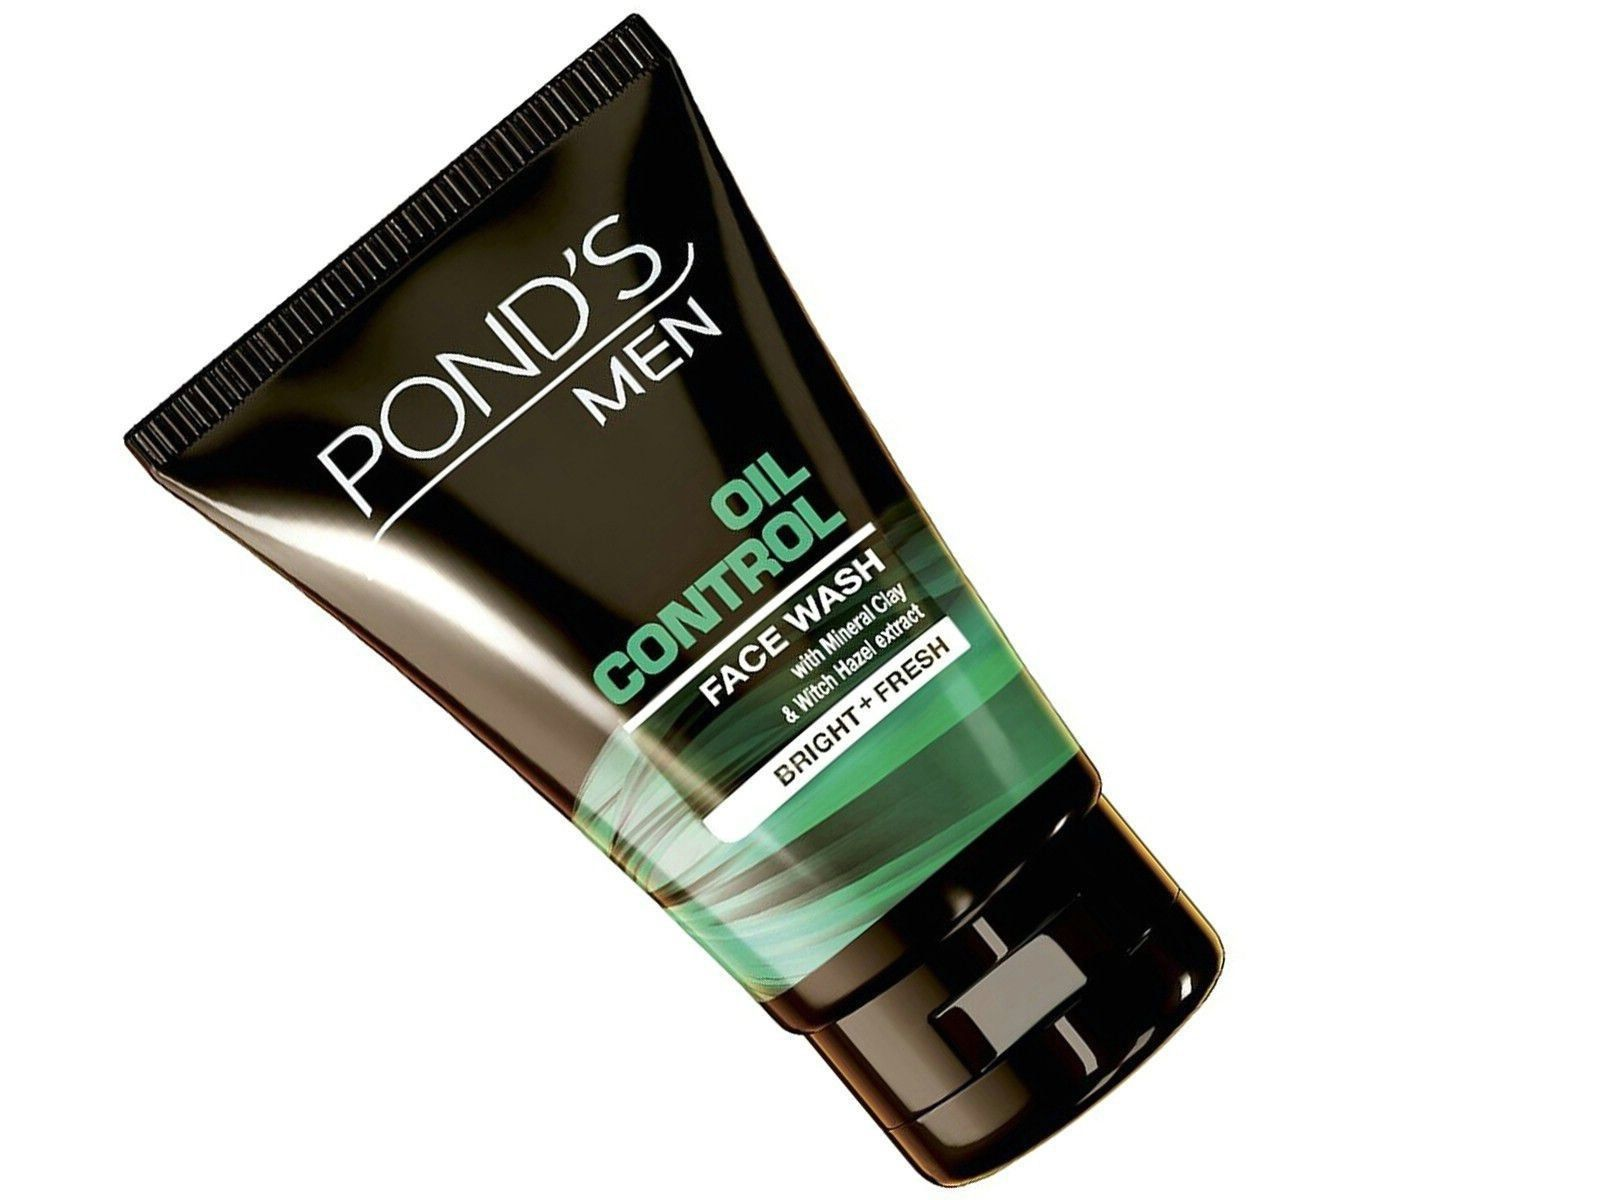 Info Harga Ponds Men Update 2018 Gota Latte Shirt Crocodile Kemeja Lengan Pendek Relax Fit S Acno Clear Oil Control Face Wash And Similar Items With Mineral Clay Free Shipping